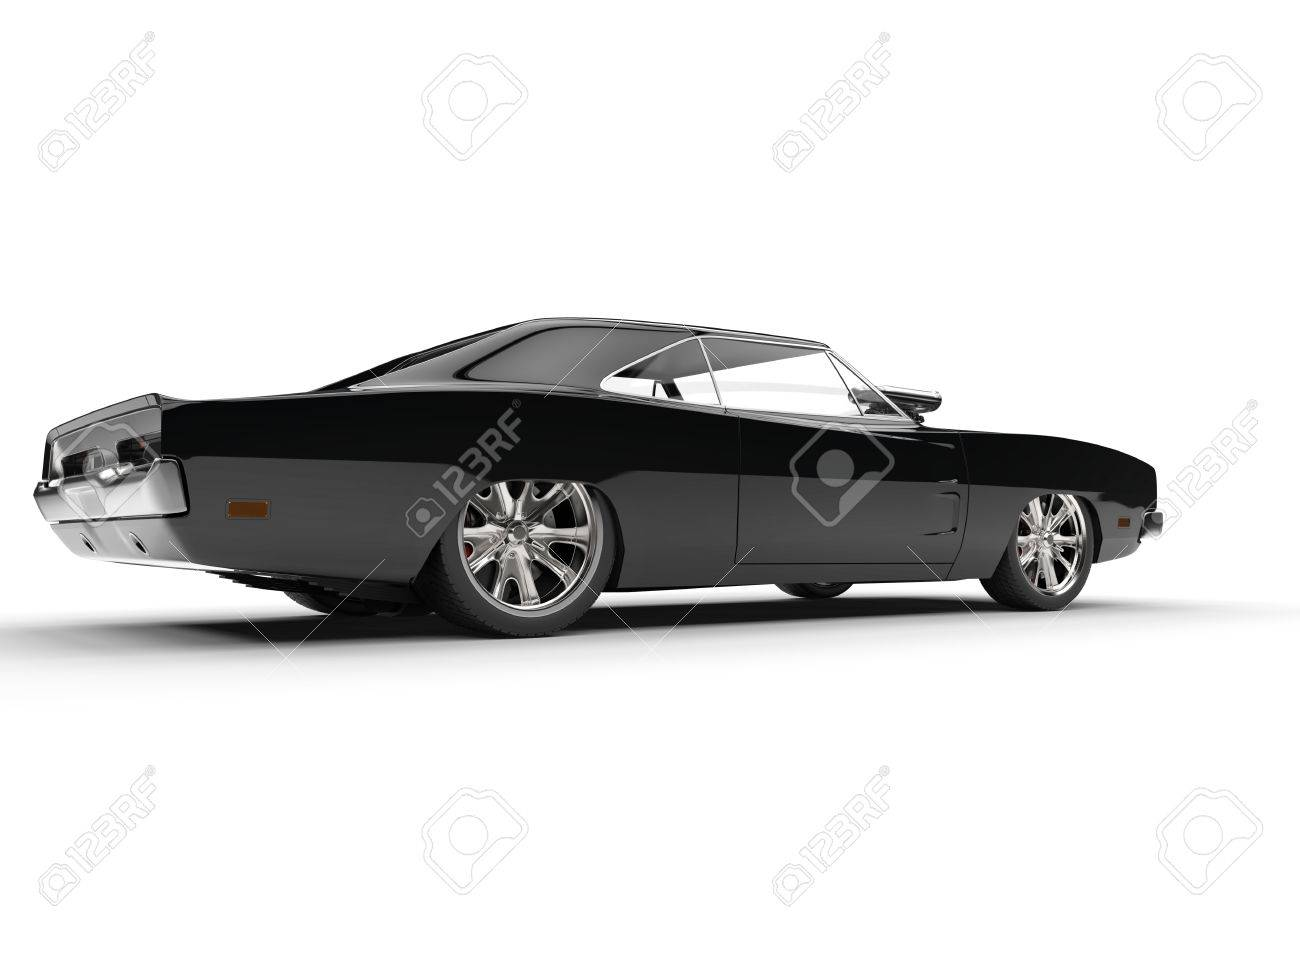 Black Muscle Car Rear Side View Stock Photo Picture And Royalty